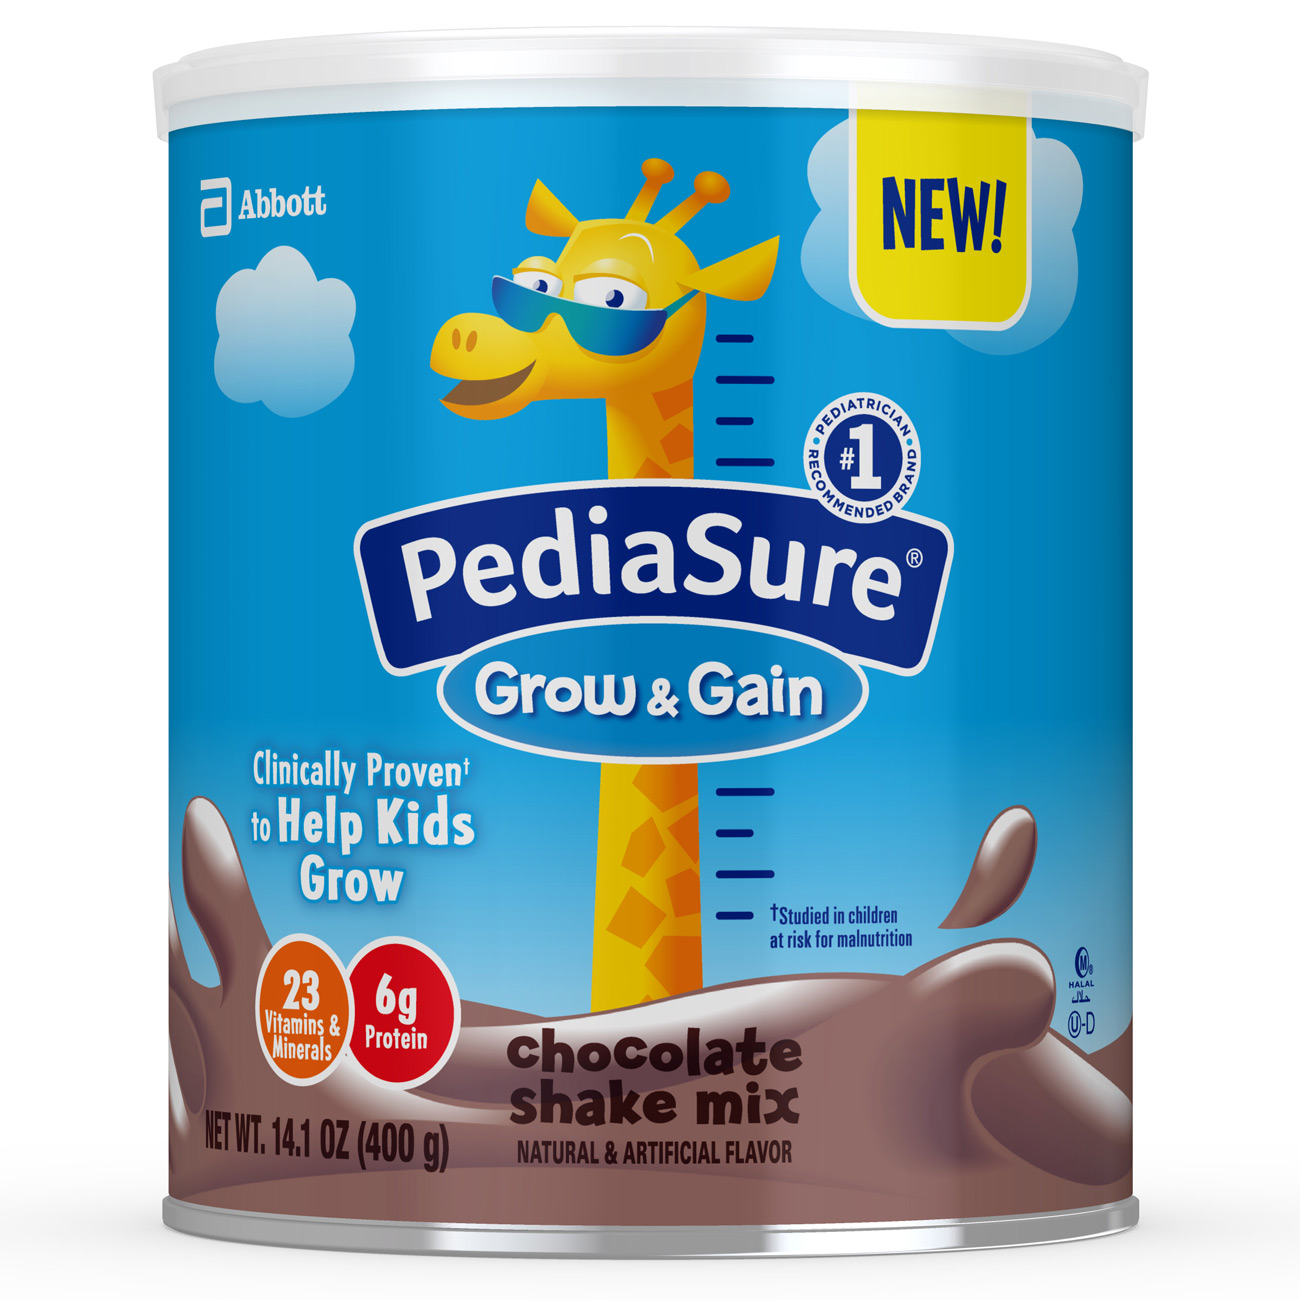 PediaSure Grow & Gain Chocolate Shake Mix, Nutrition Shake for Kids, 14.1 oz (6 count)